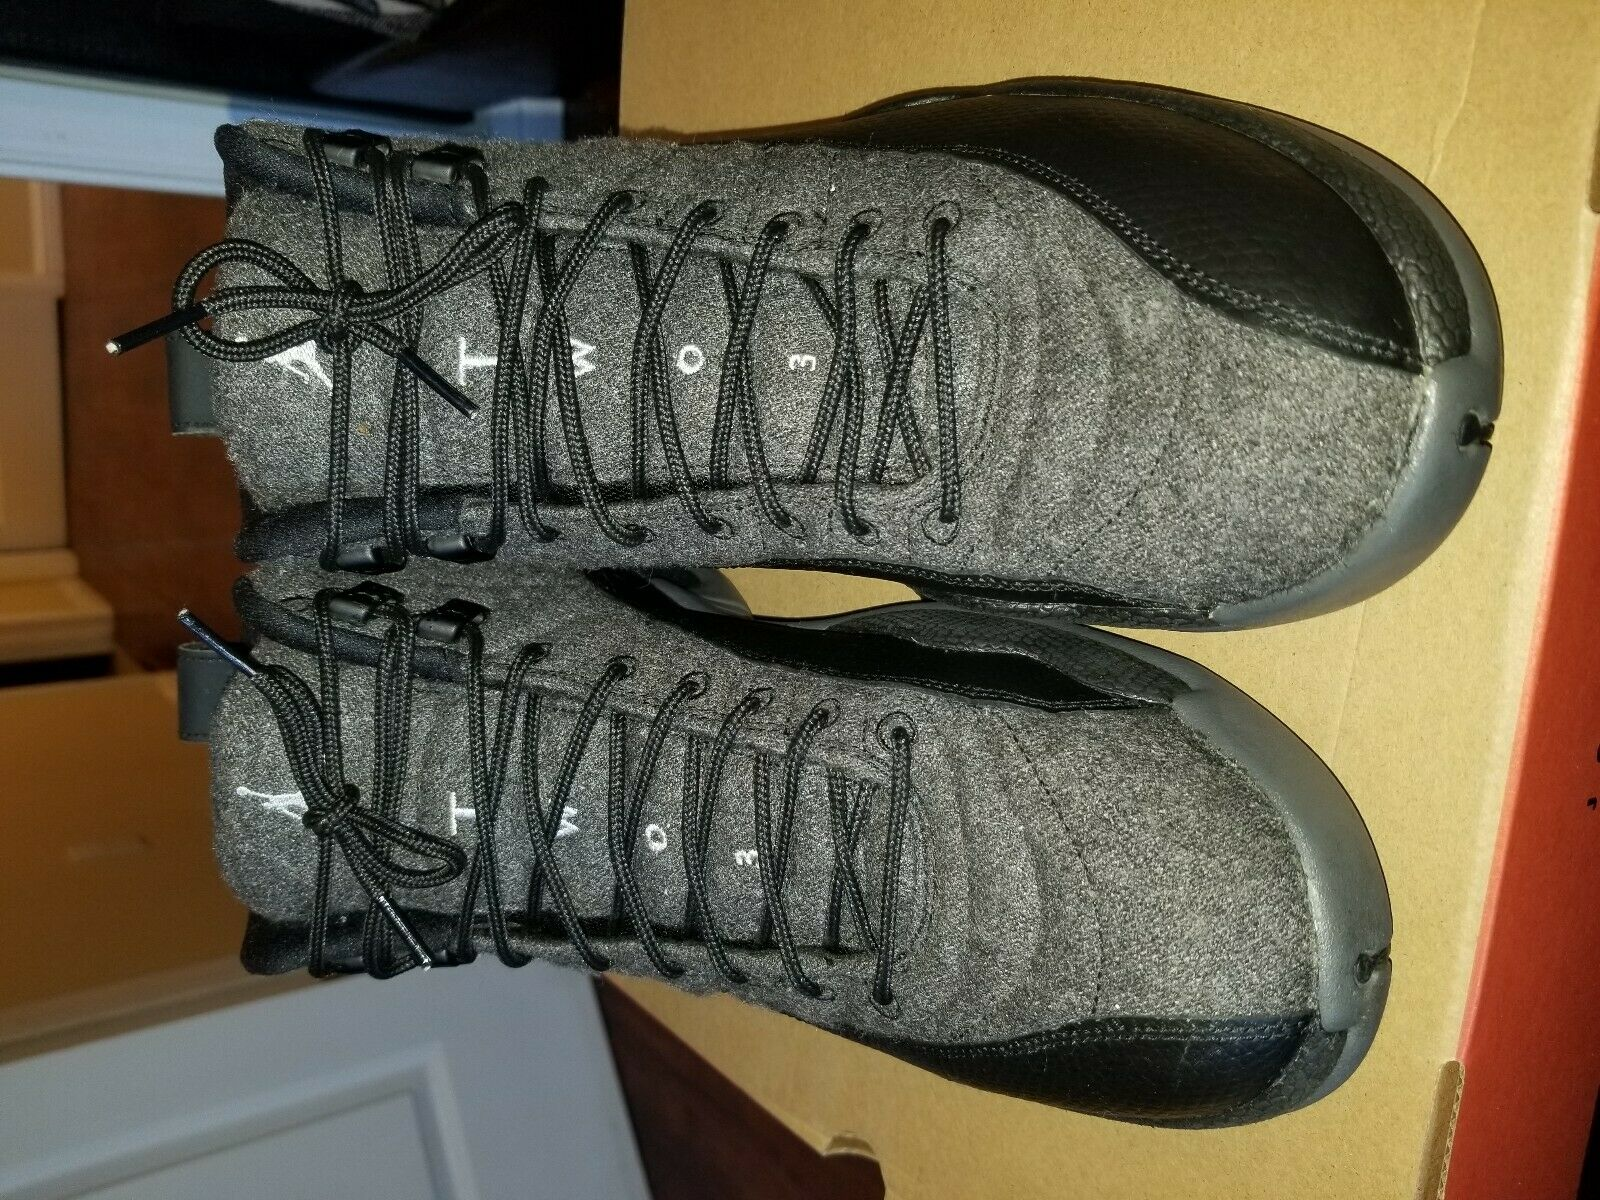 Nike Air Jordan 12 Retro Wool (852627-003) Men's shoes Size 10.5